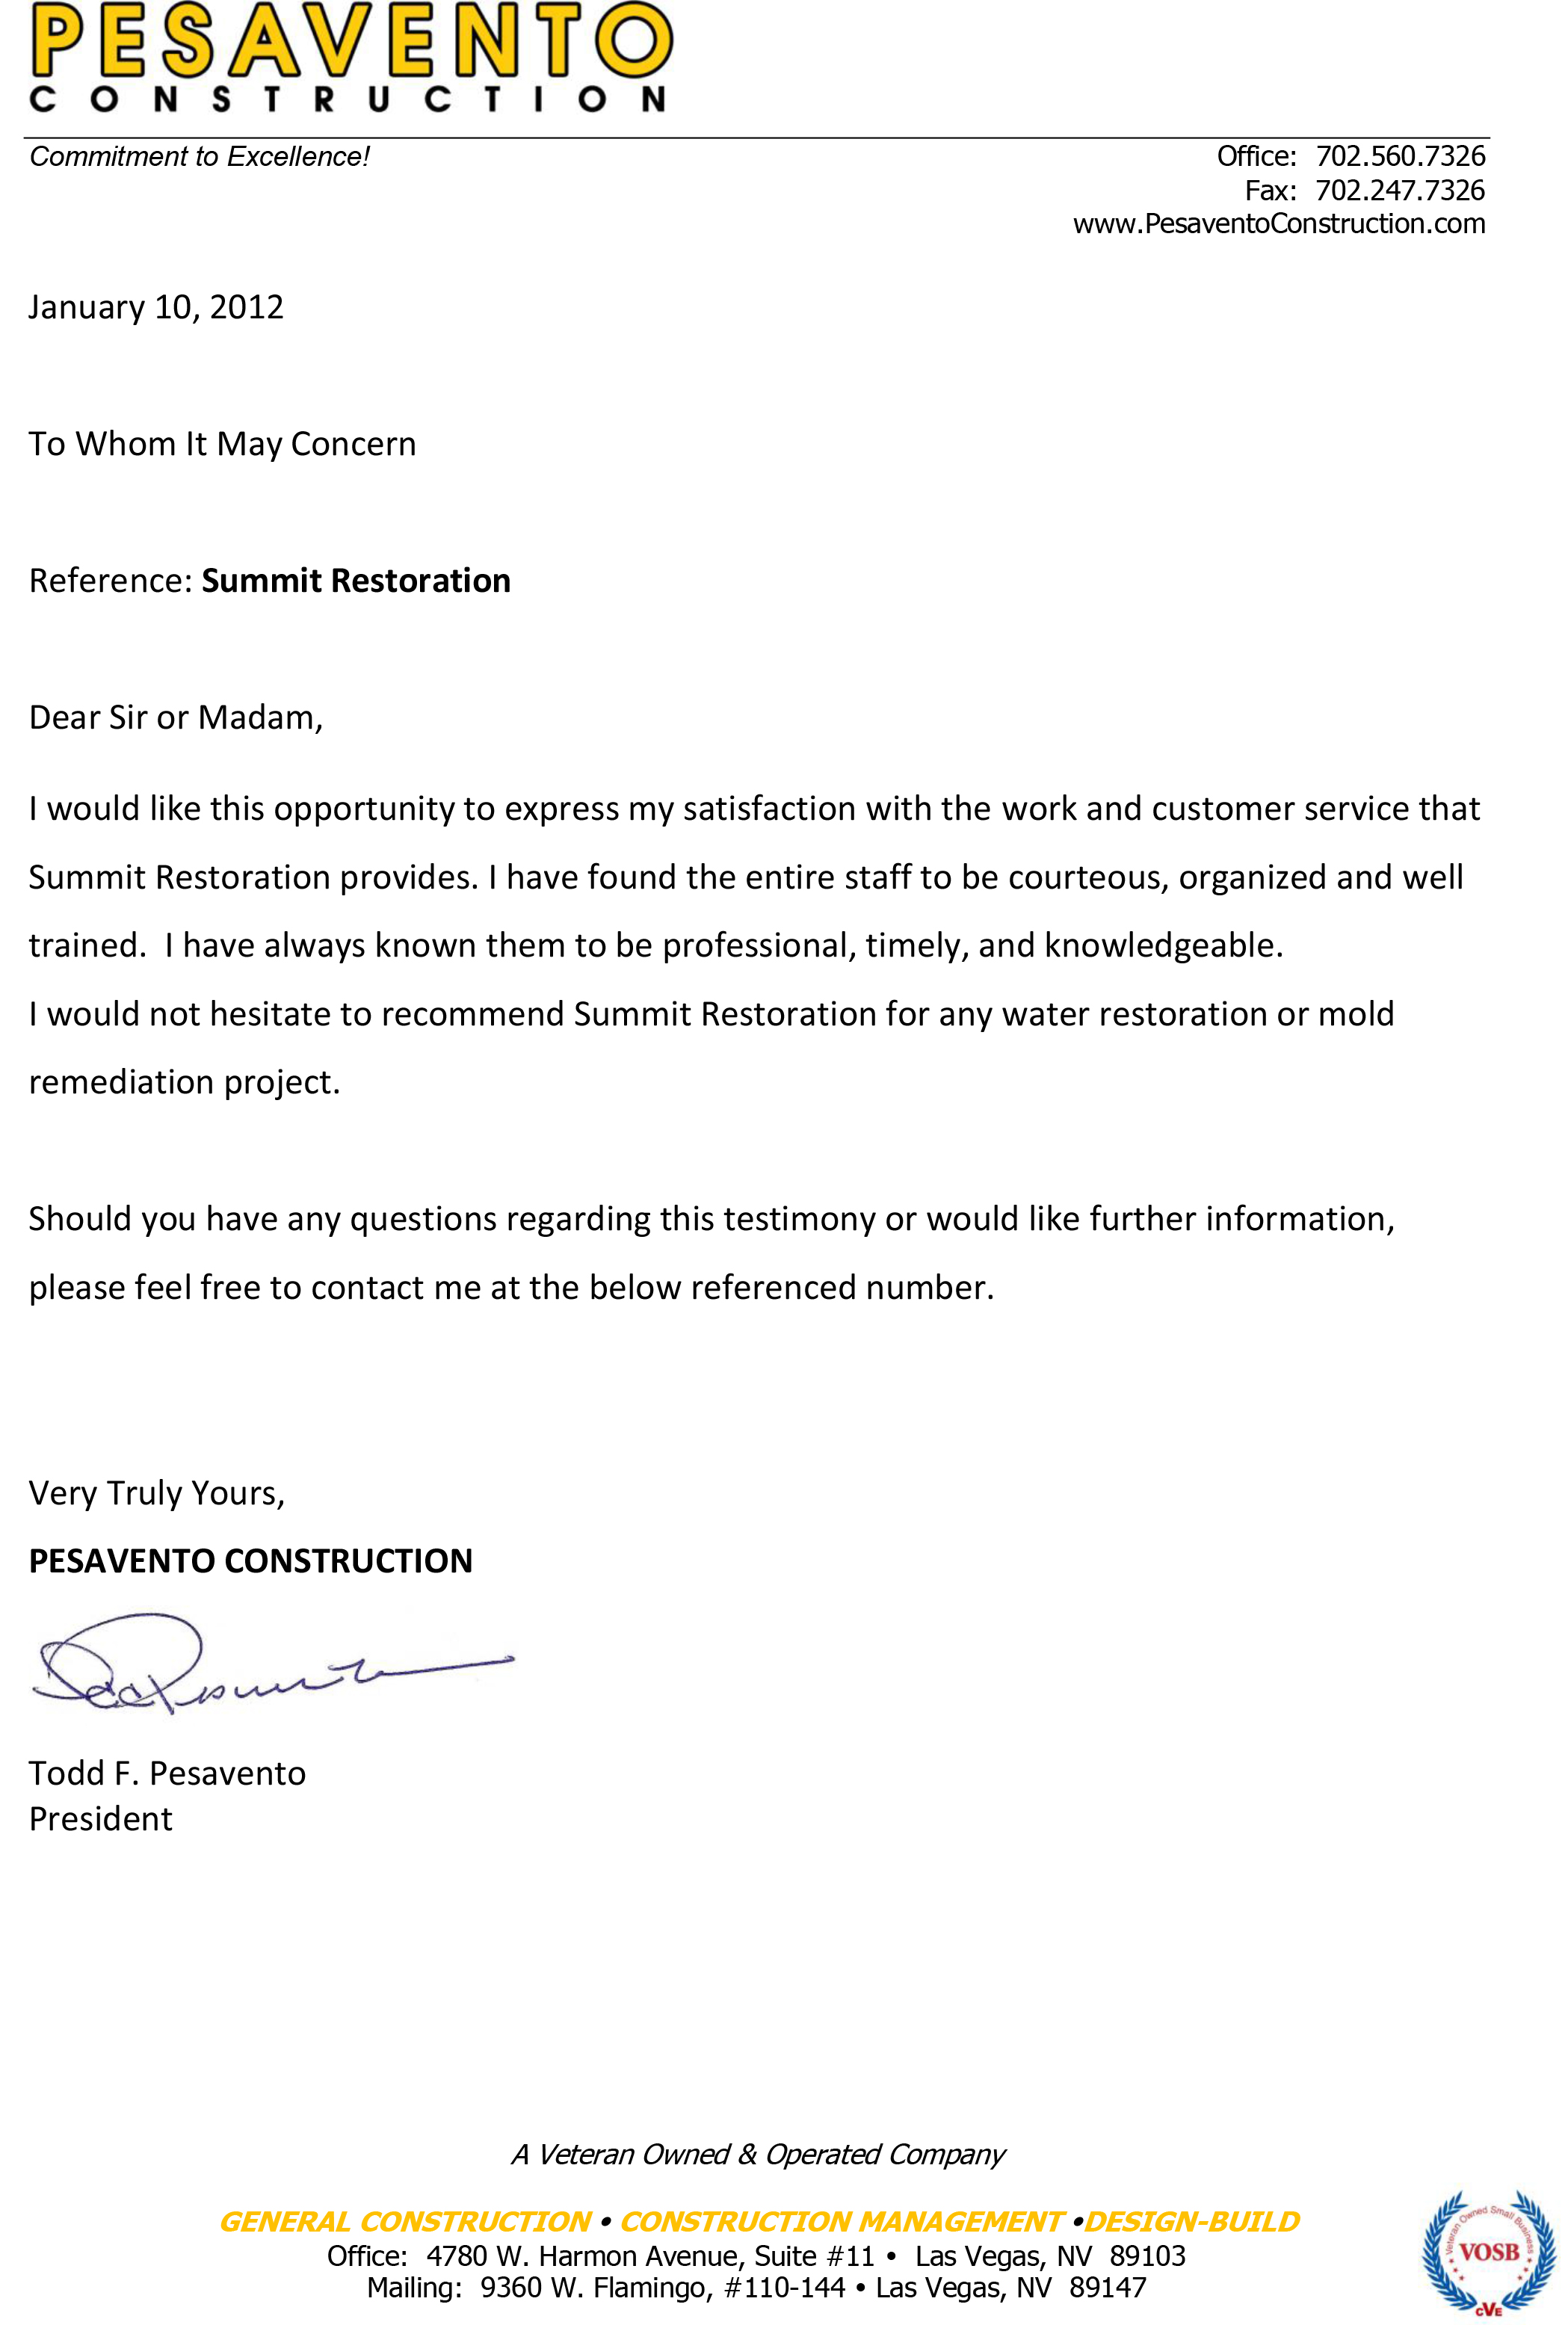 Testimonial from Pesavento Construction